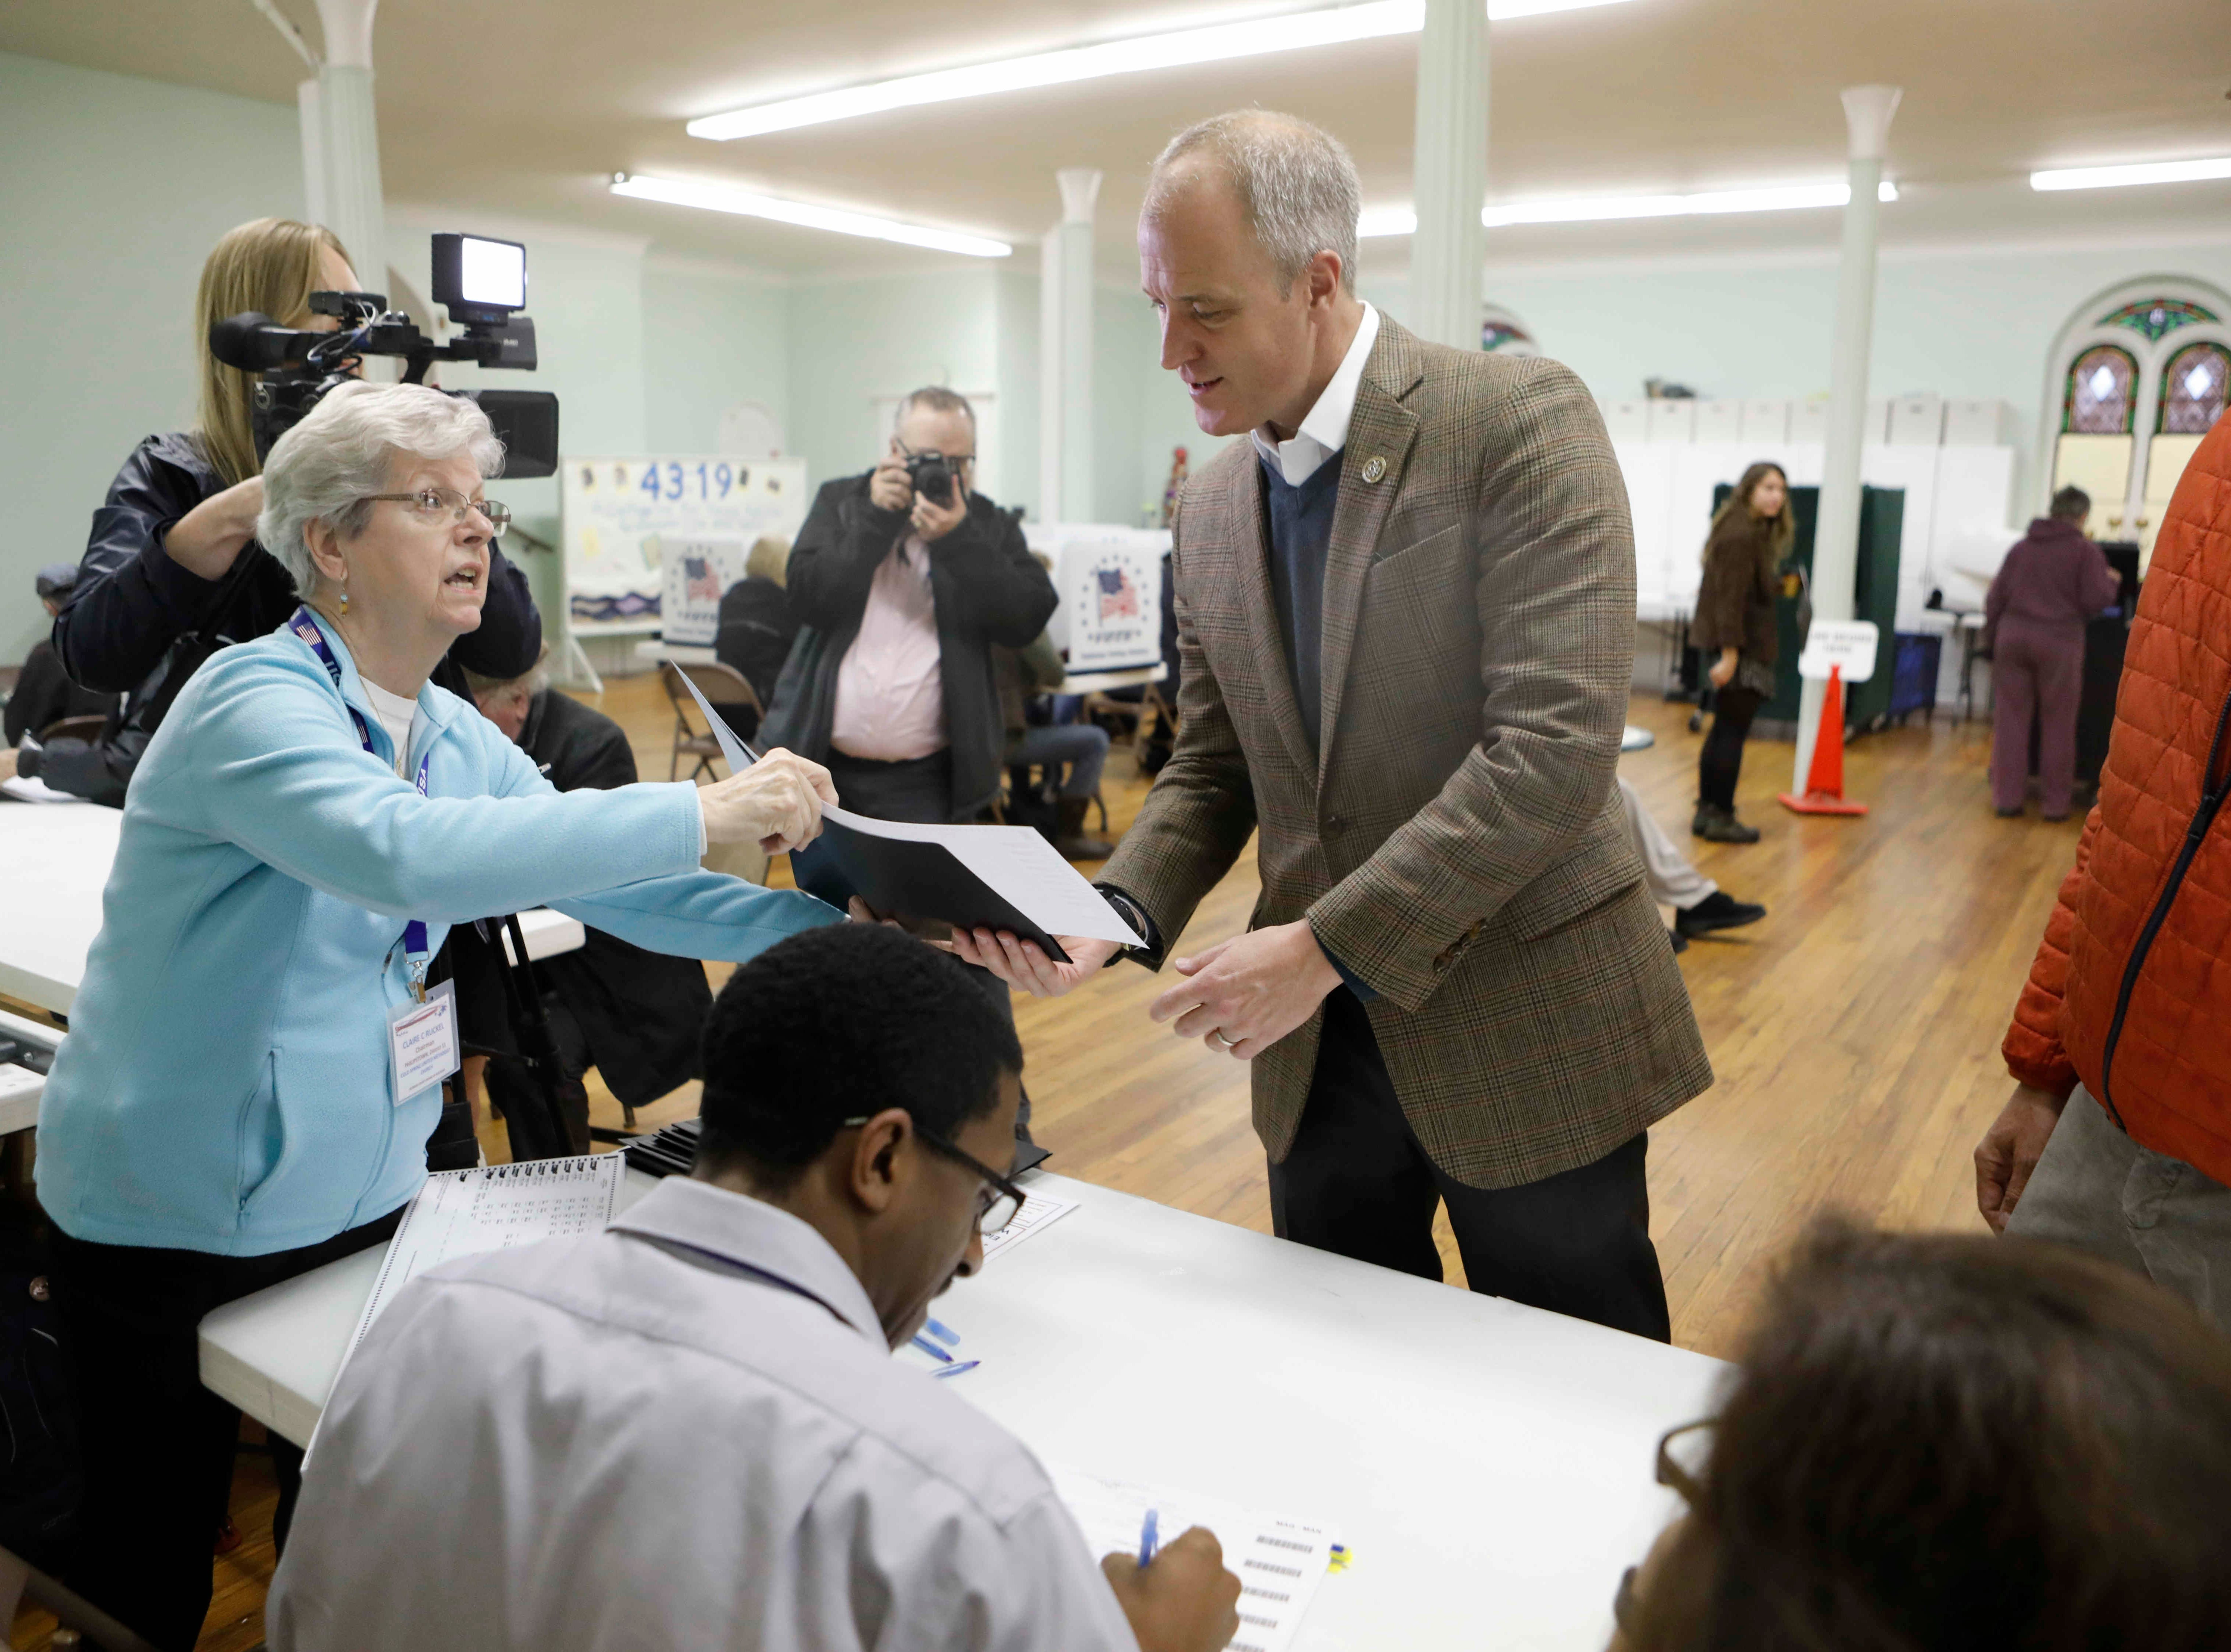 Congressman Sean Patrick Maloney prepares to cast his vote at the United Methodist Church polling station in Cold Spring on Nov. 6, 2018.